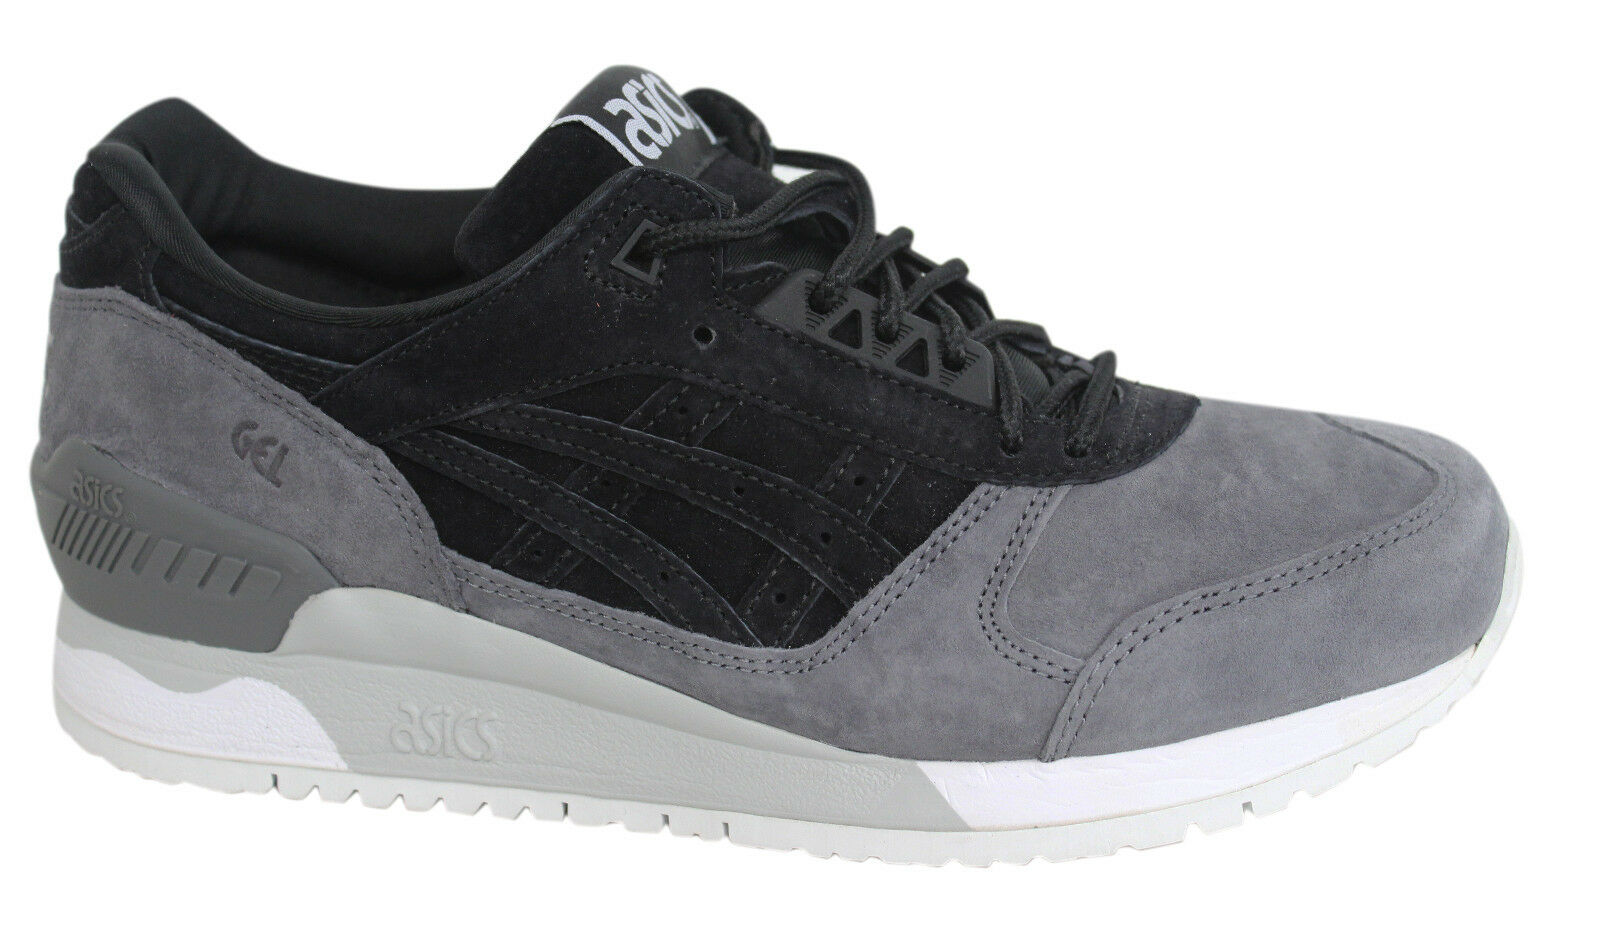 Asics Gel Respector Black Grey Lace Up Leather Mens Trainers H6U1L 9090 D108